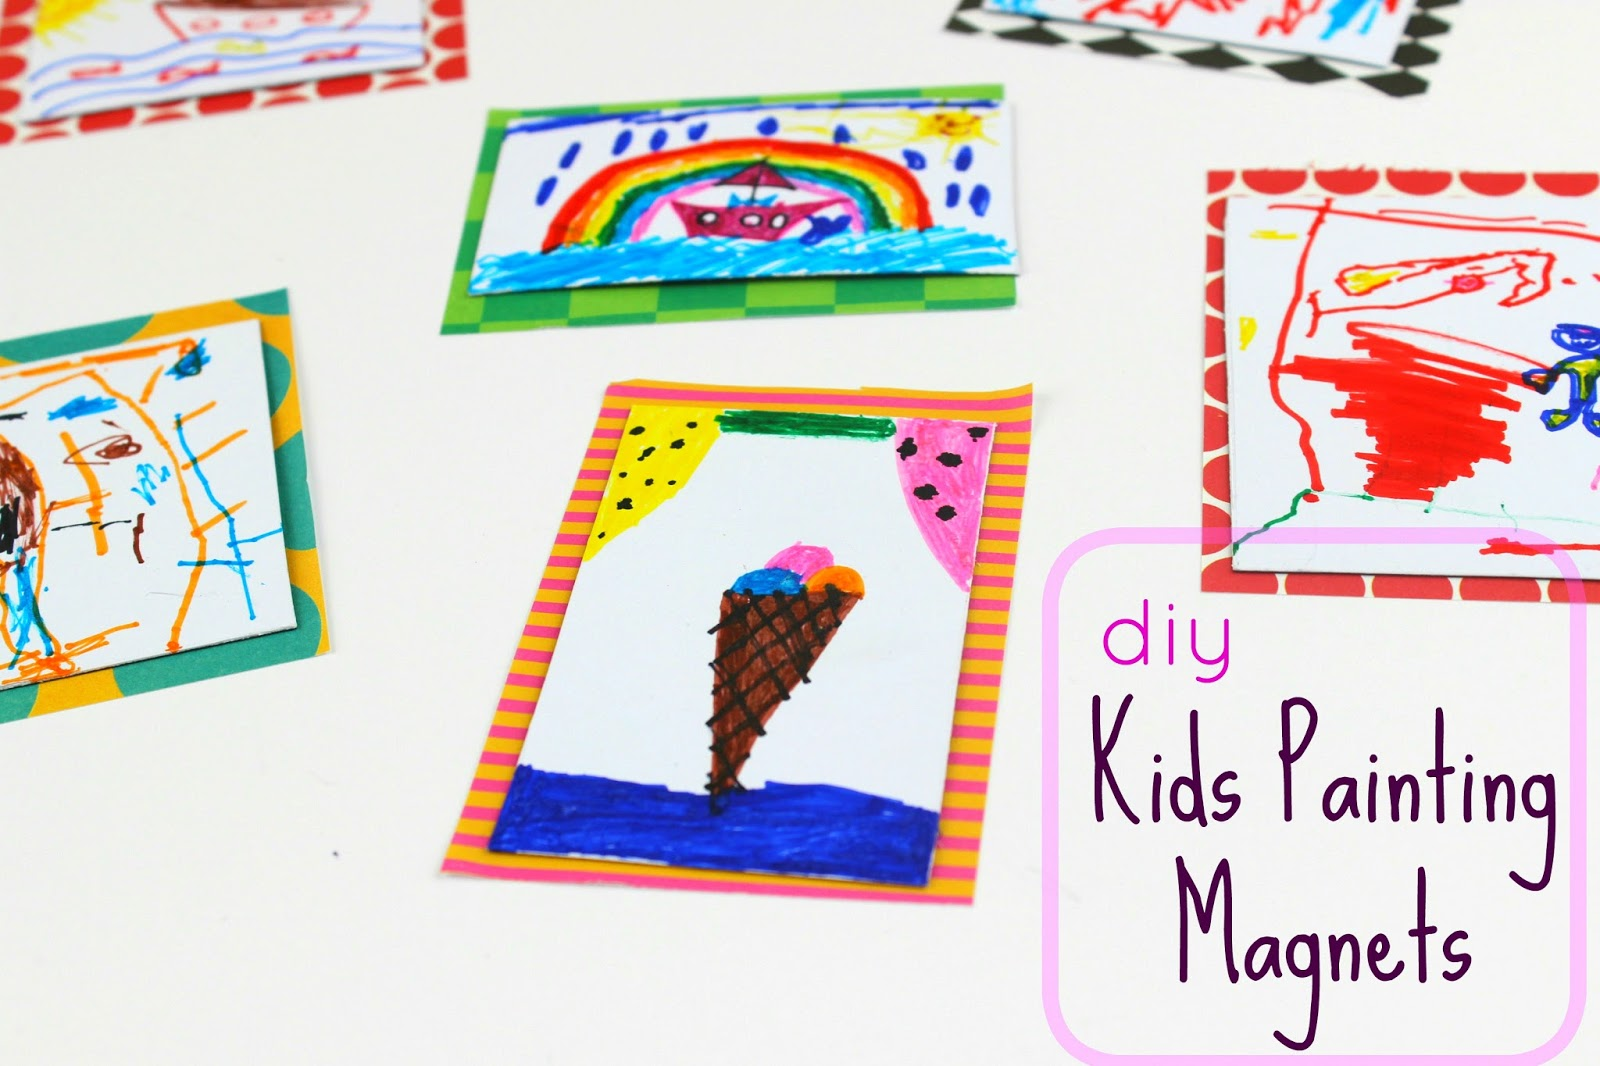 Diy Kids Painting Magnets!  df15be0a64b